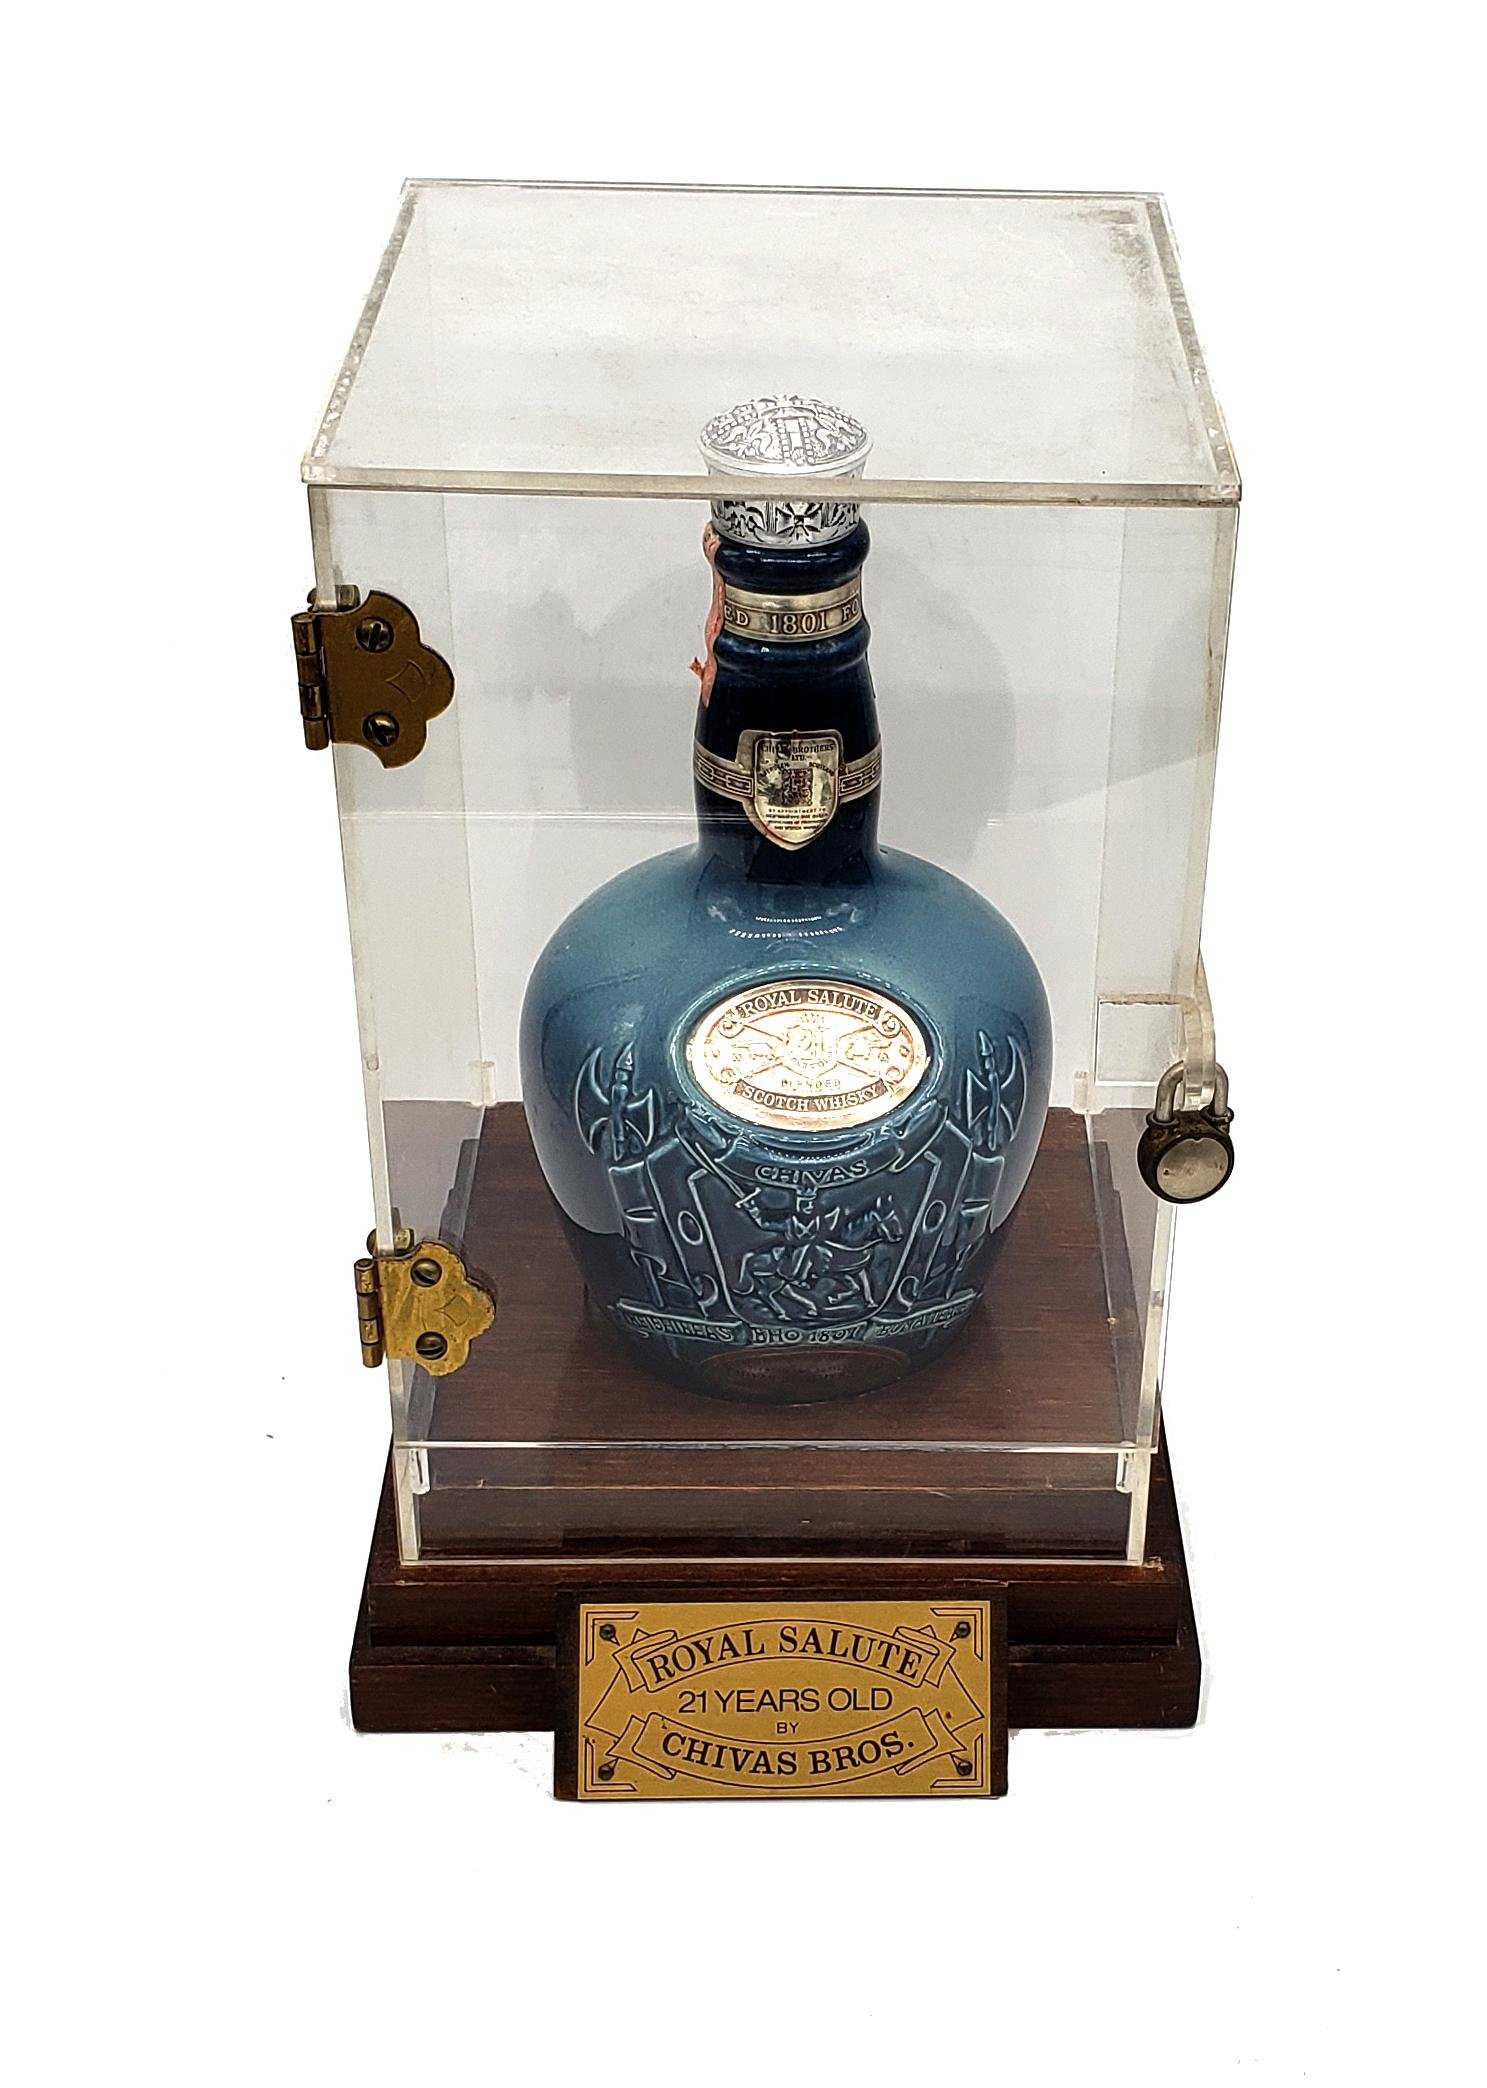 Royal Salute 21 Years Old By Chivas Bros Bottle!